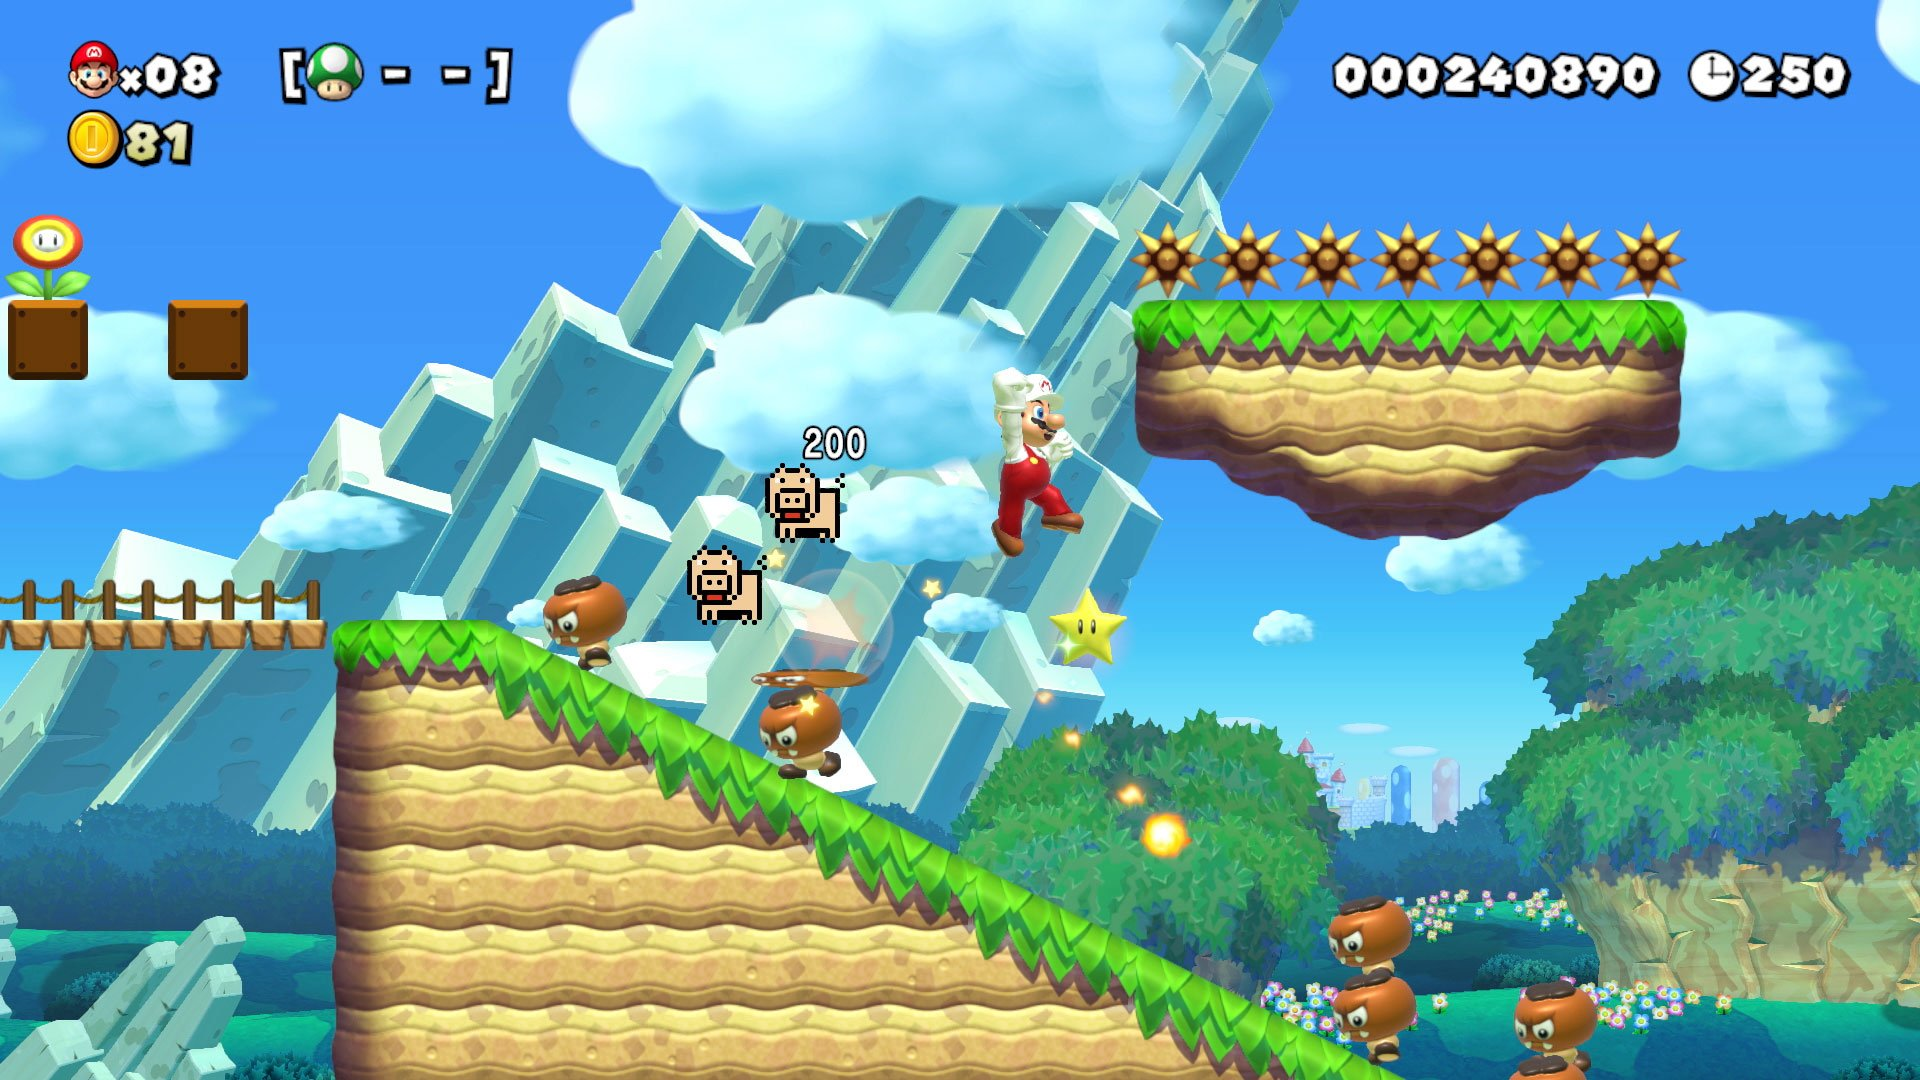 Download Super Mario Maker 2 On Android & iOS Devices